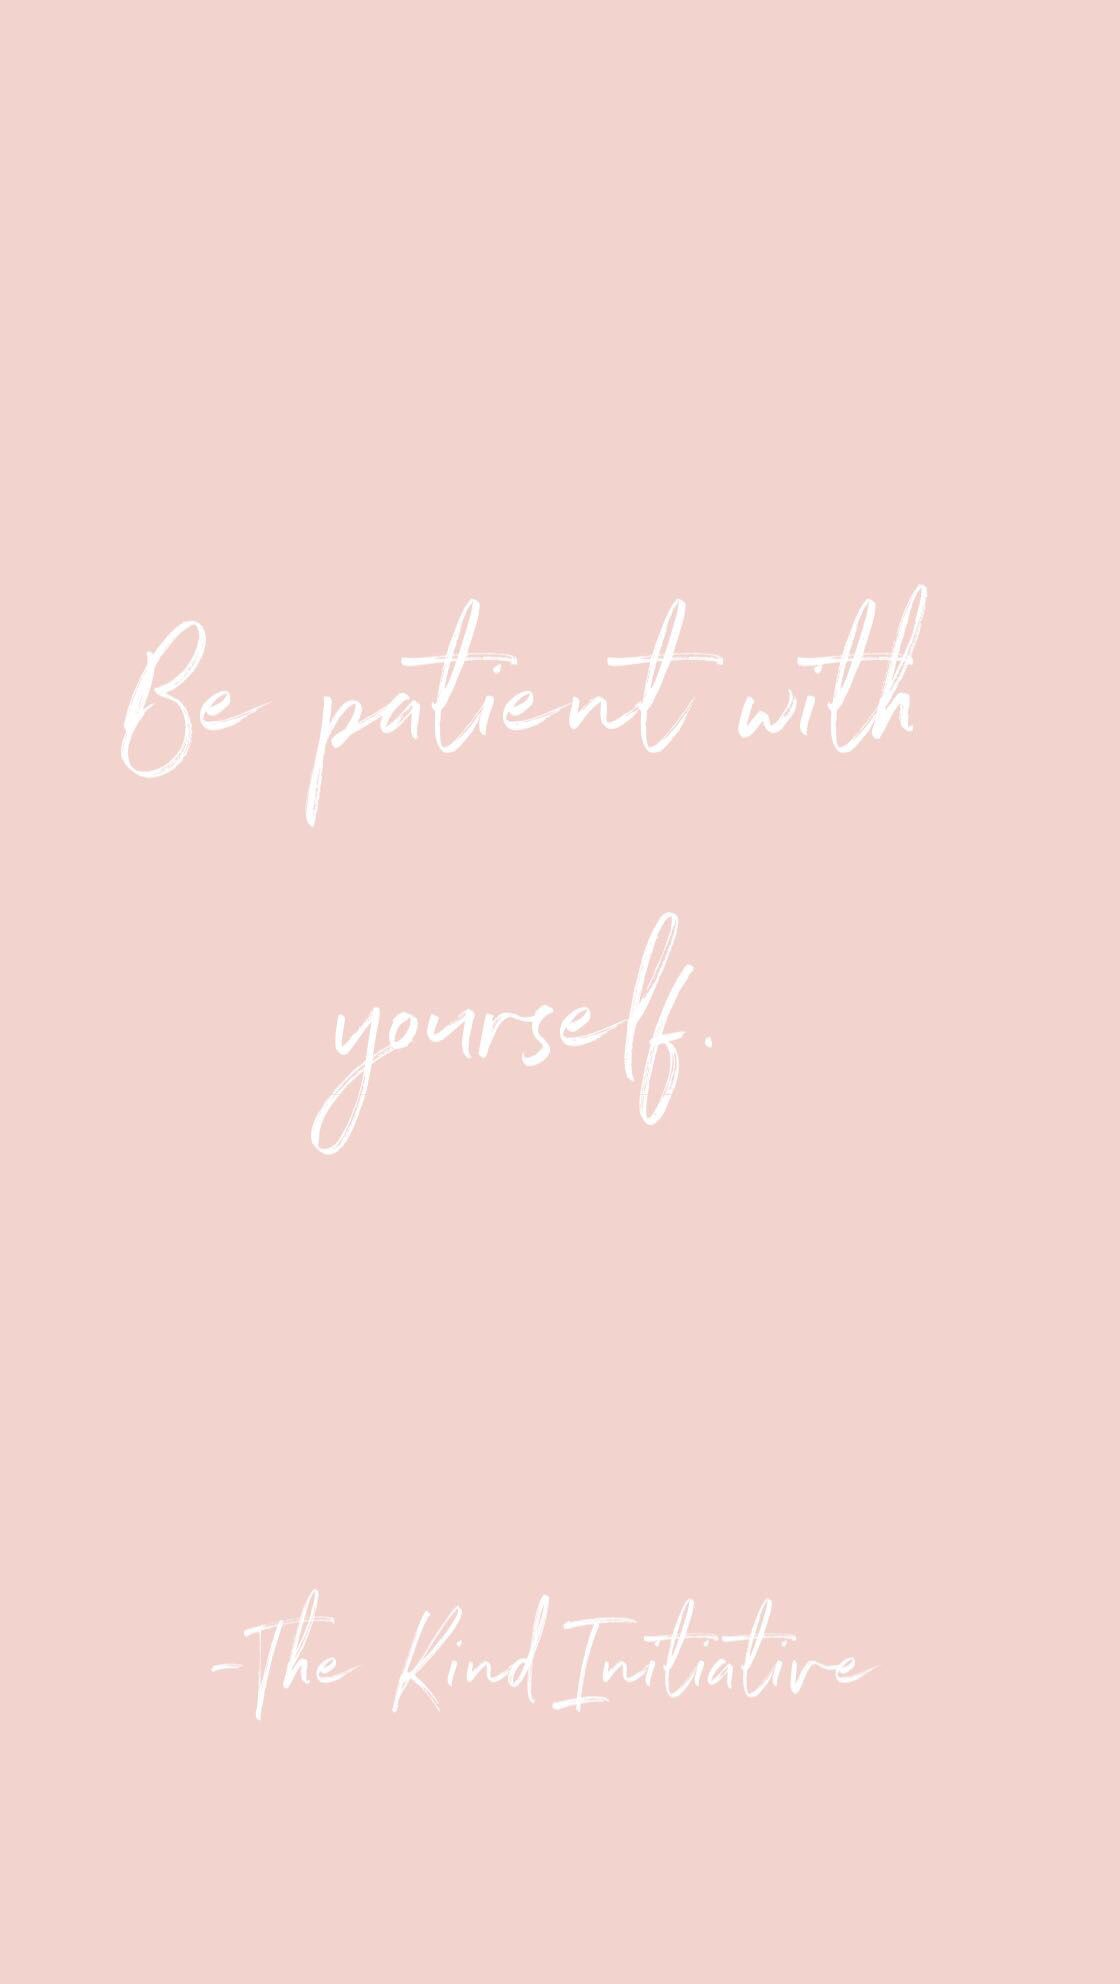 Kind To Self Archives The Kind Initiative Inspiration To Help You Become Your Best Self Pink Wallpaper Quotes Silly Quotes Wallpaper Quotes